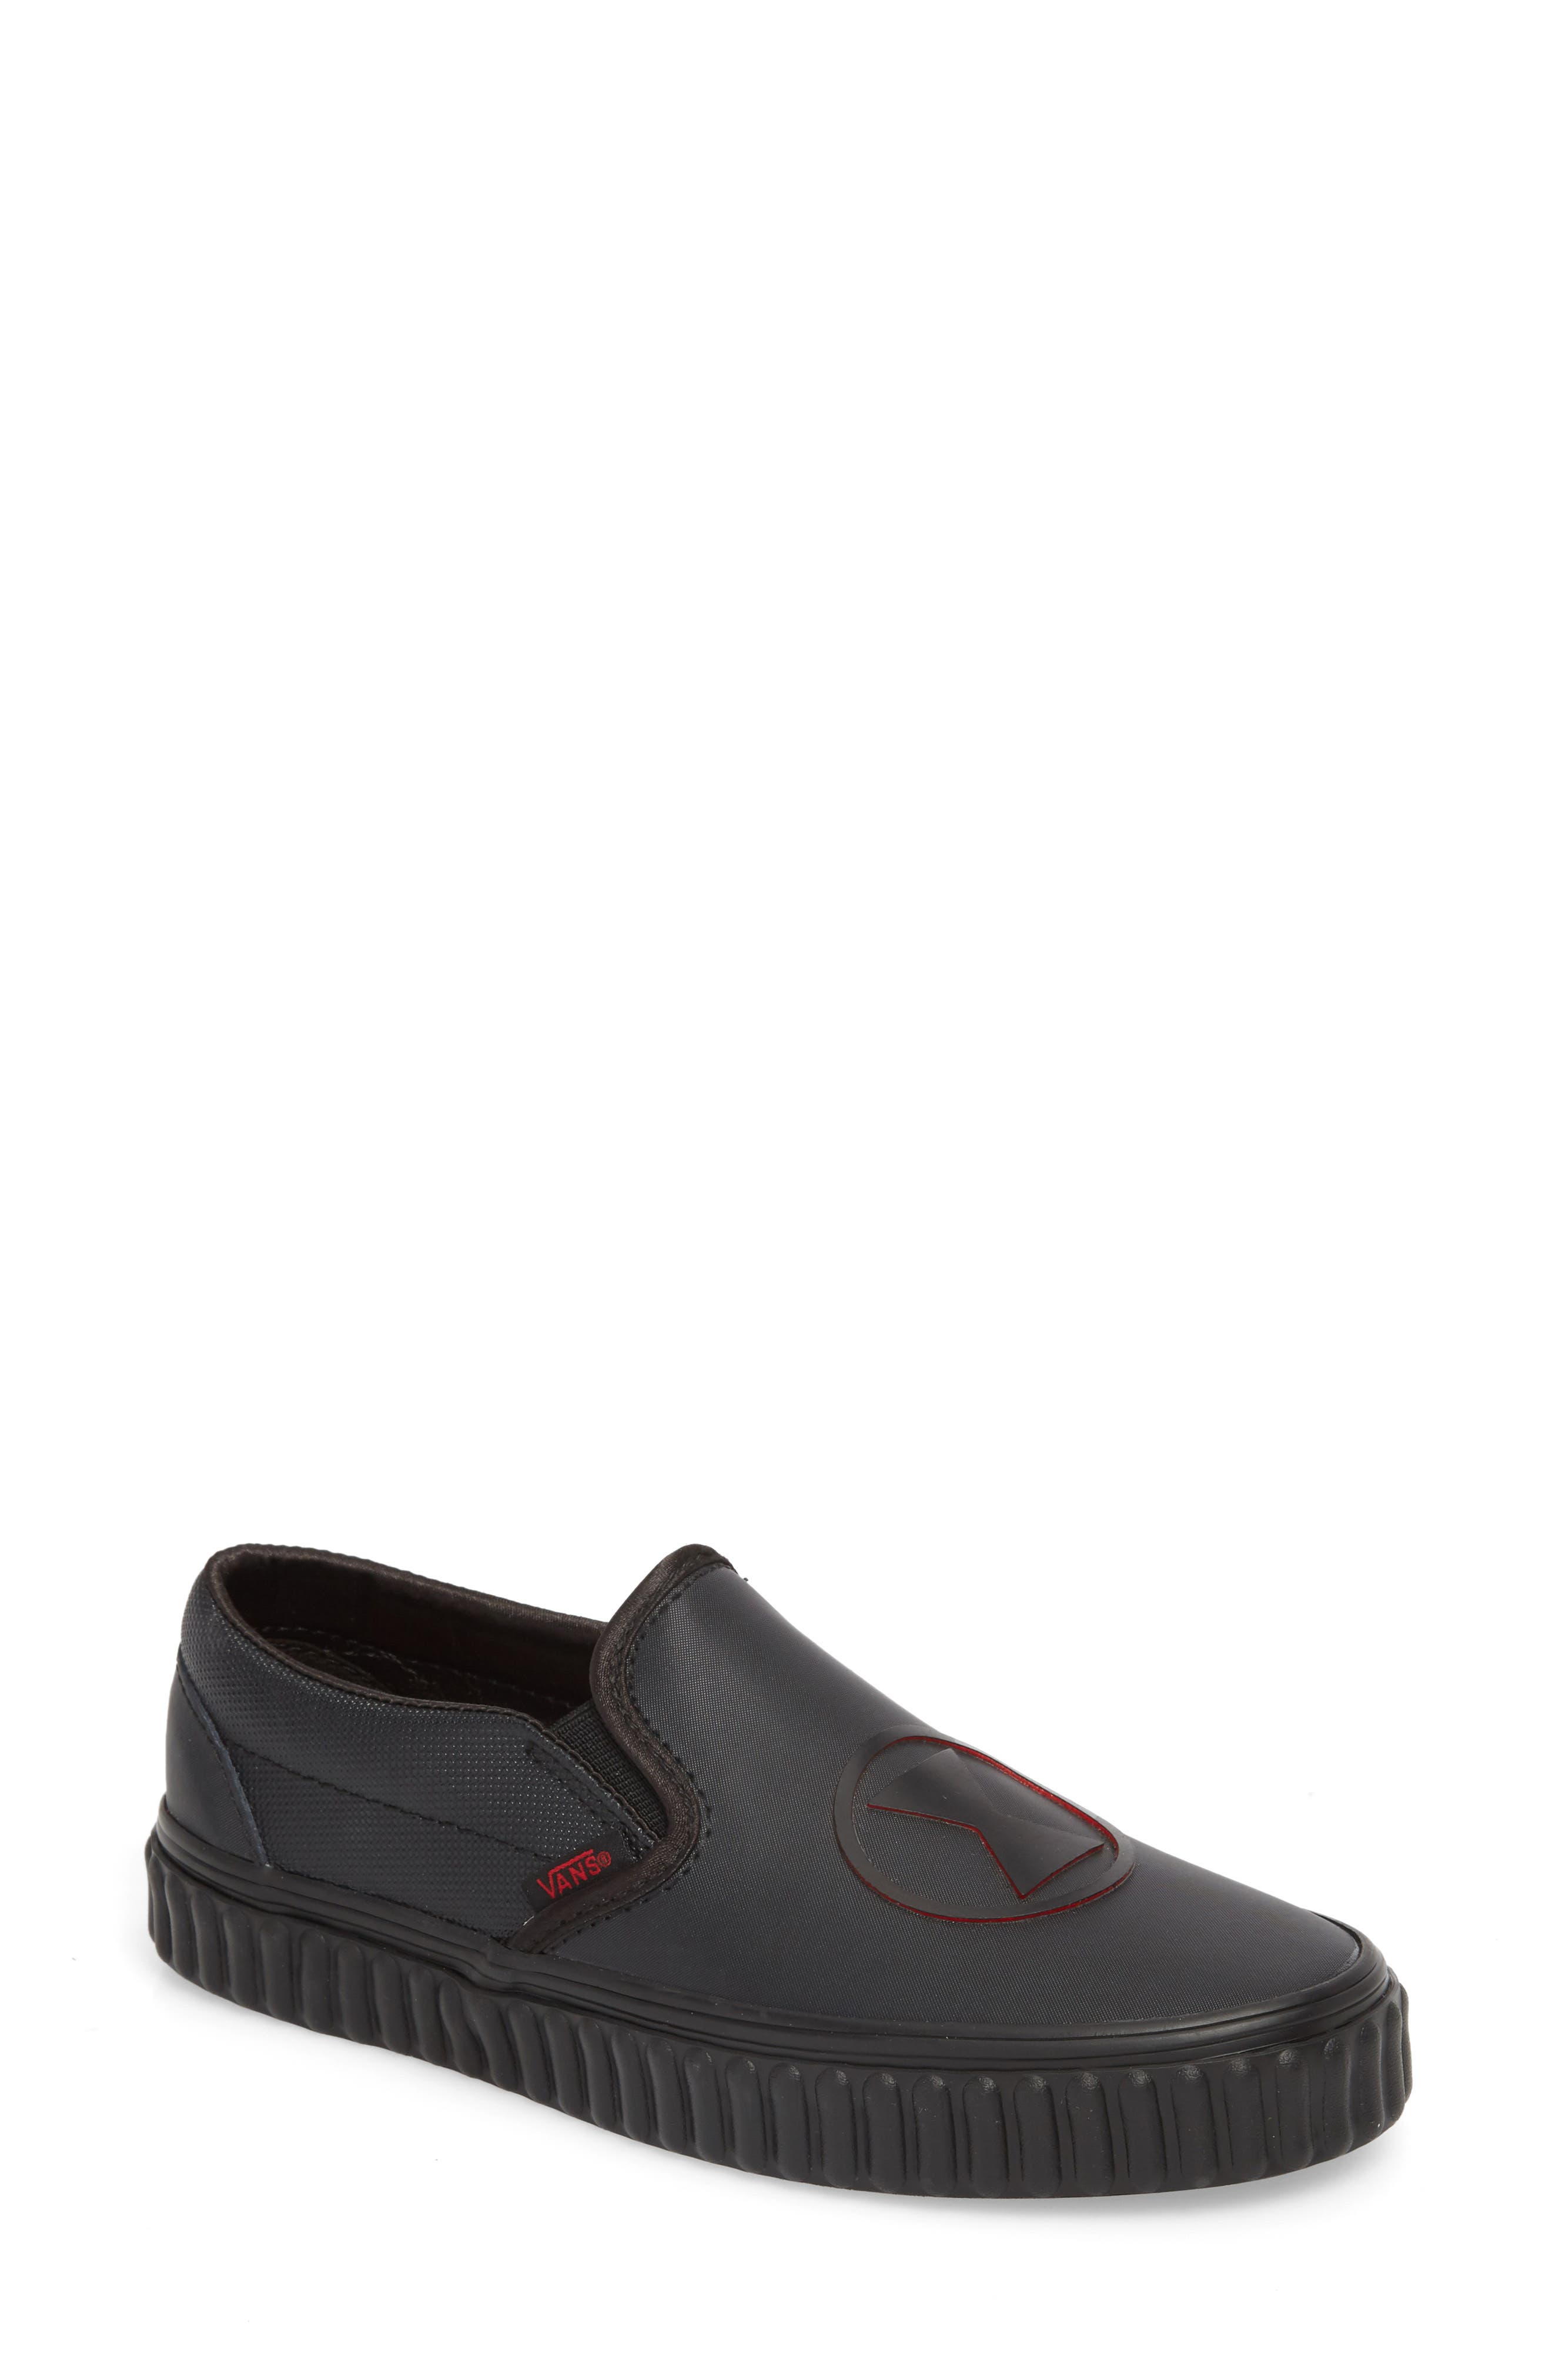 Marvel<sup>®</sup> Black Widow Classic Slip-On,                         Main,                         color, MARVEL BLACK WIDOW/ BLACK